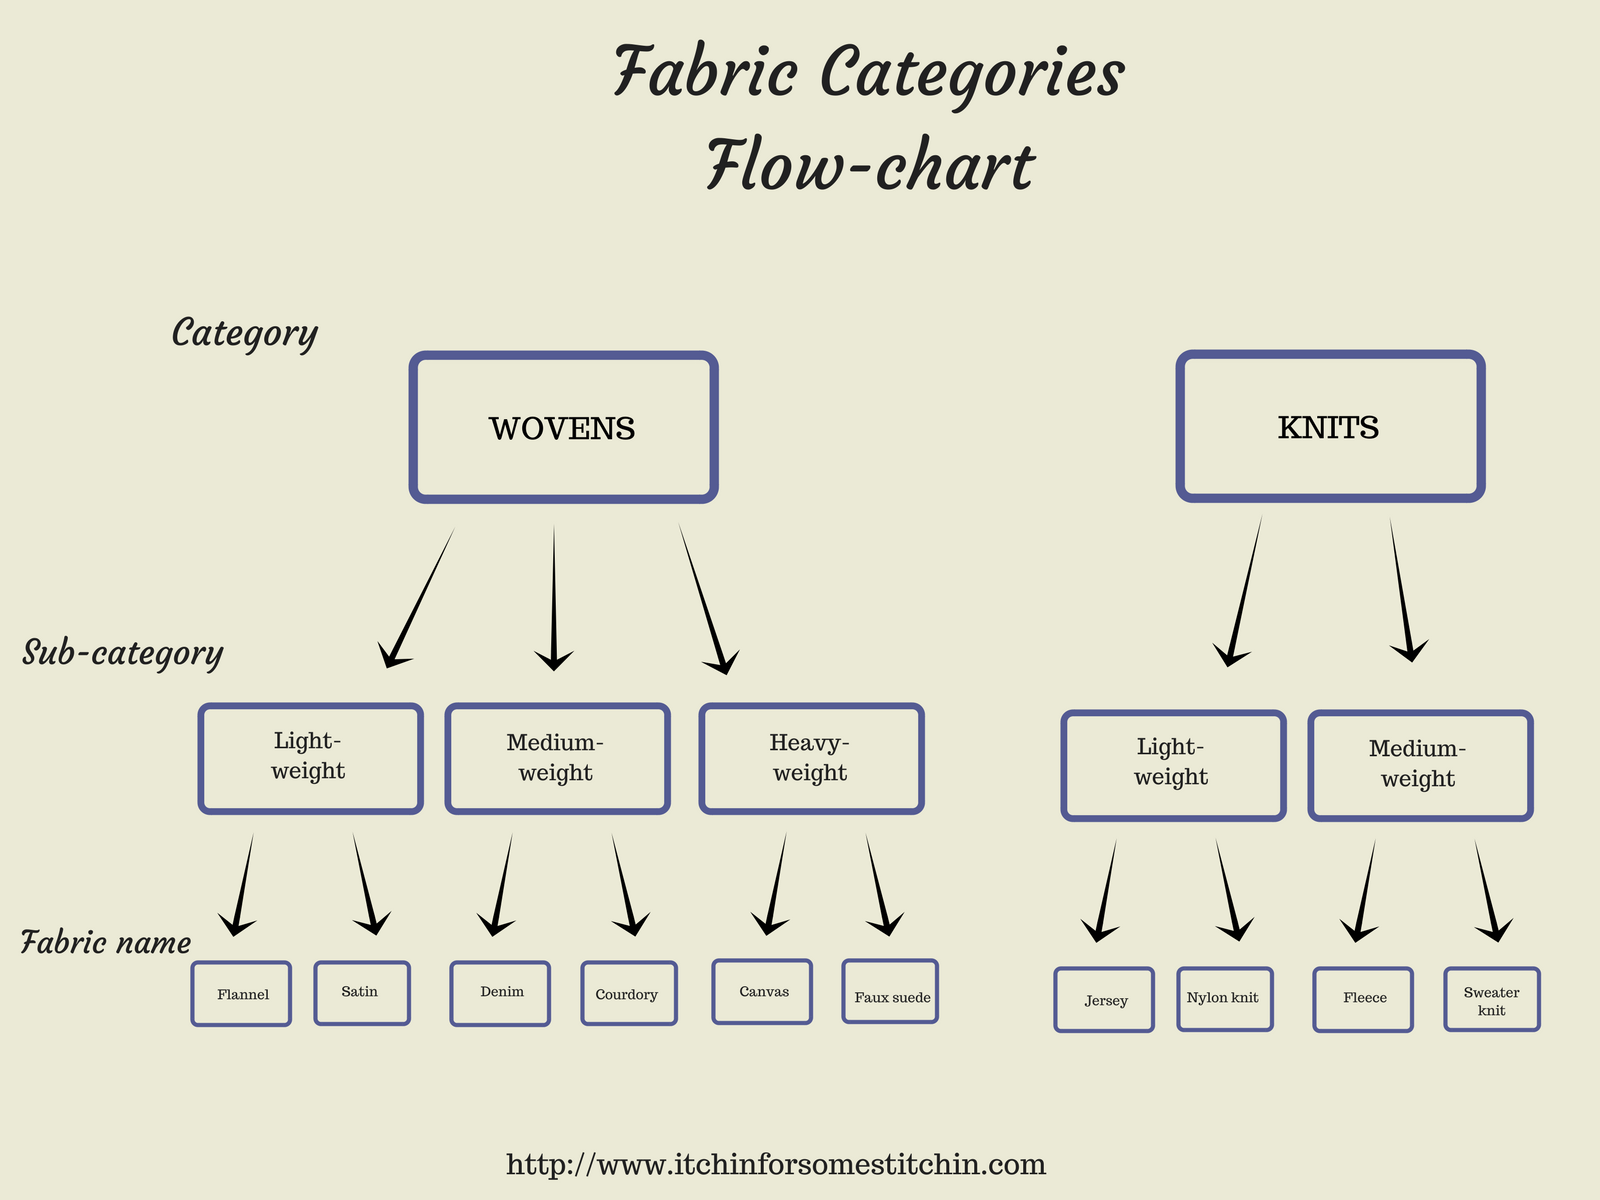 Woven versus Knit: Fabric Category Flow Chart. https://www.itchinforsomestitchin.com